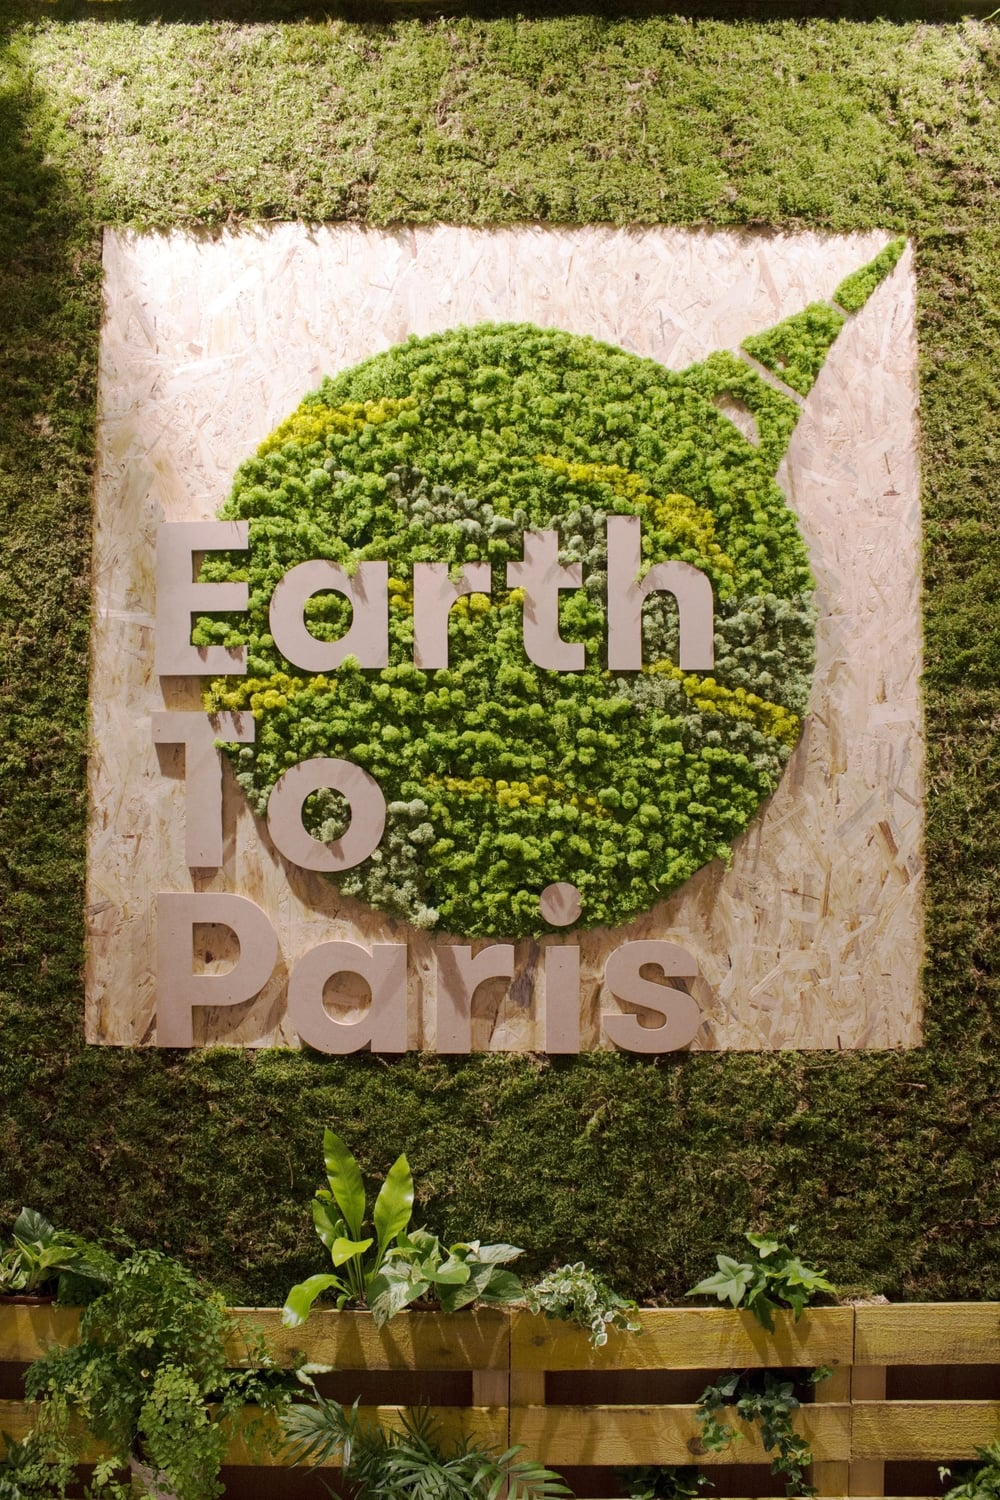 Living wall entrance at the Earth to Paris event hosted by the UN Foundation at the Petit Palais, Paris.